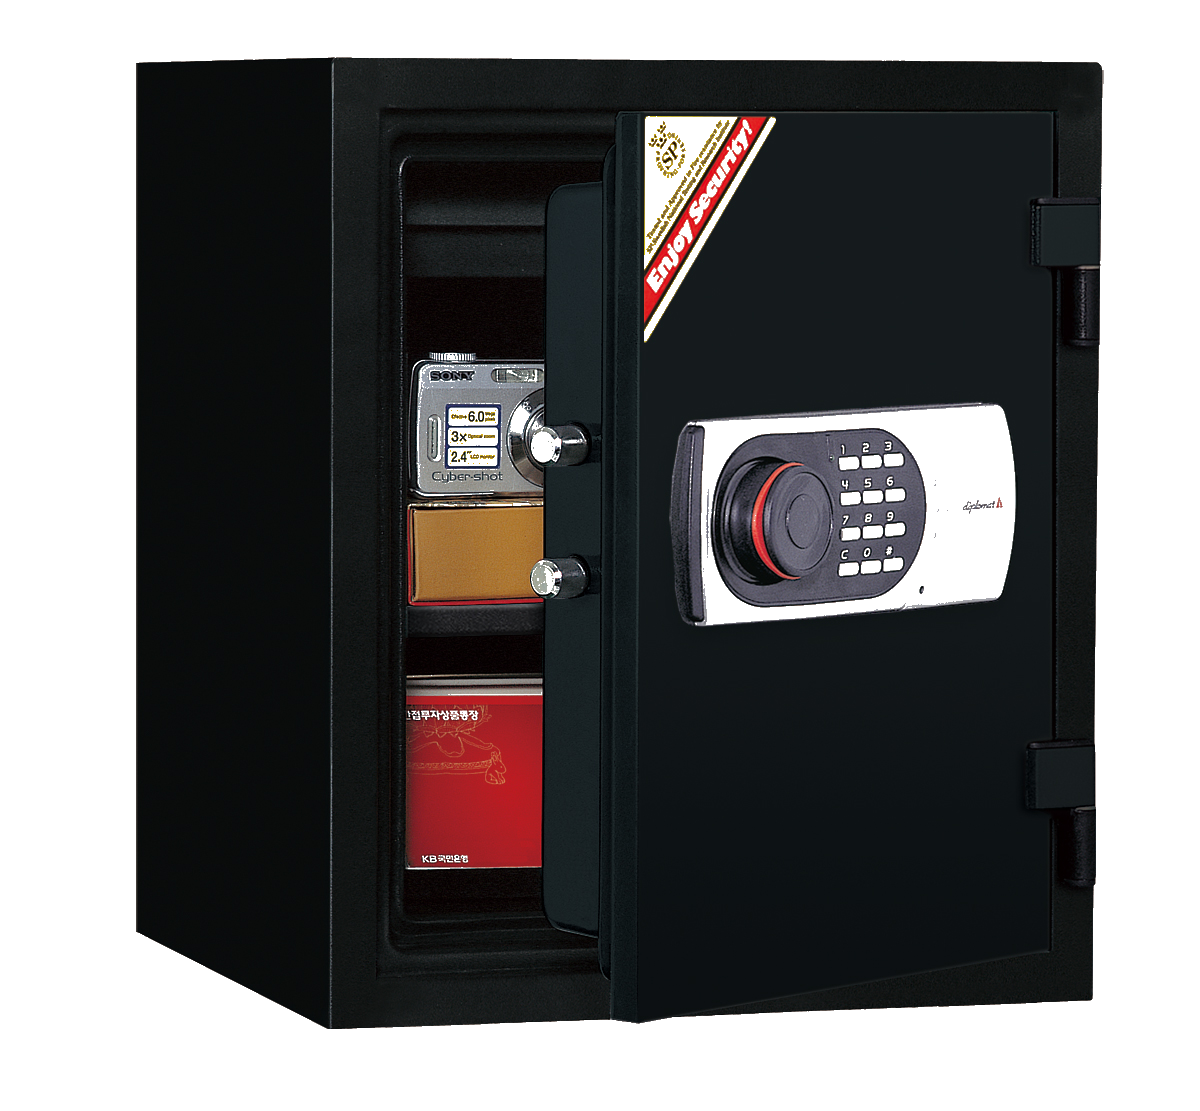 Home Fire Safe, model 125